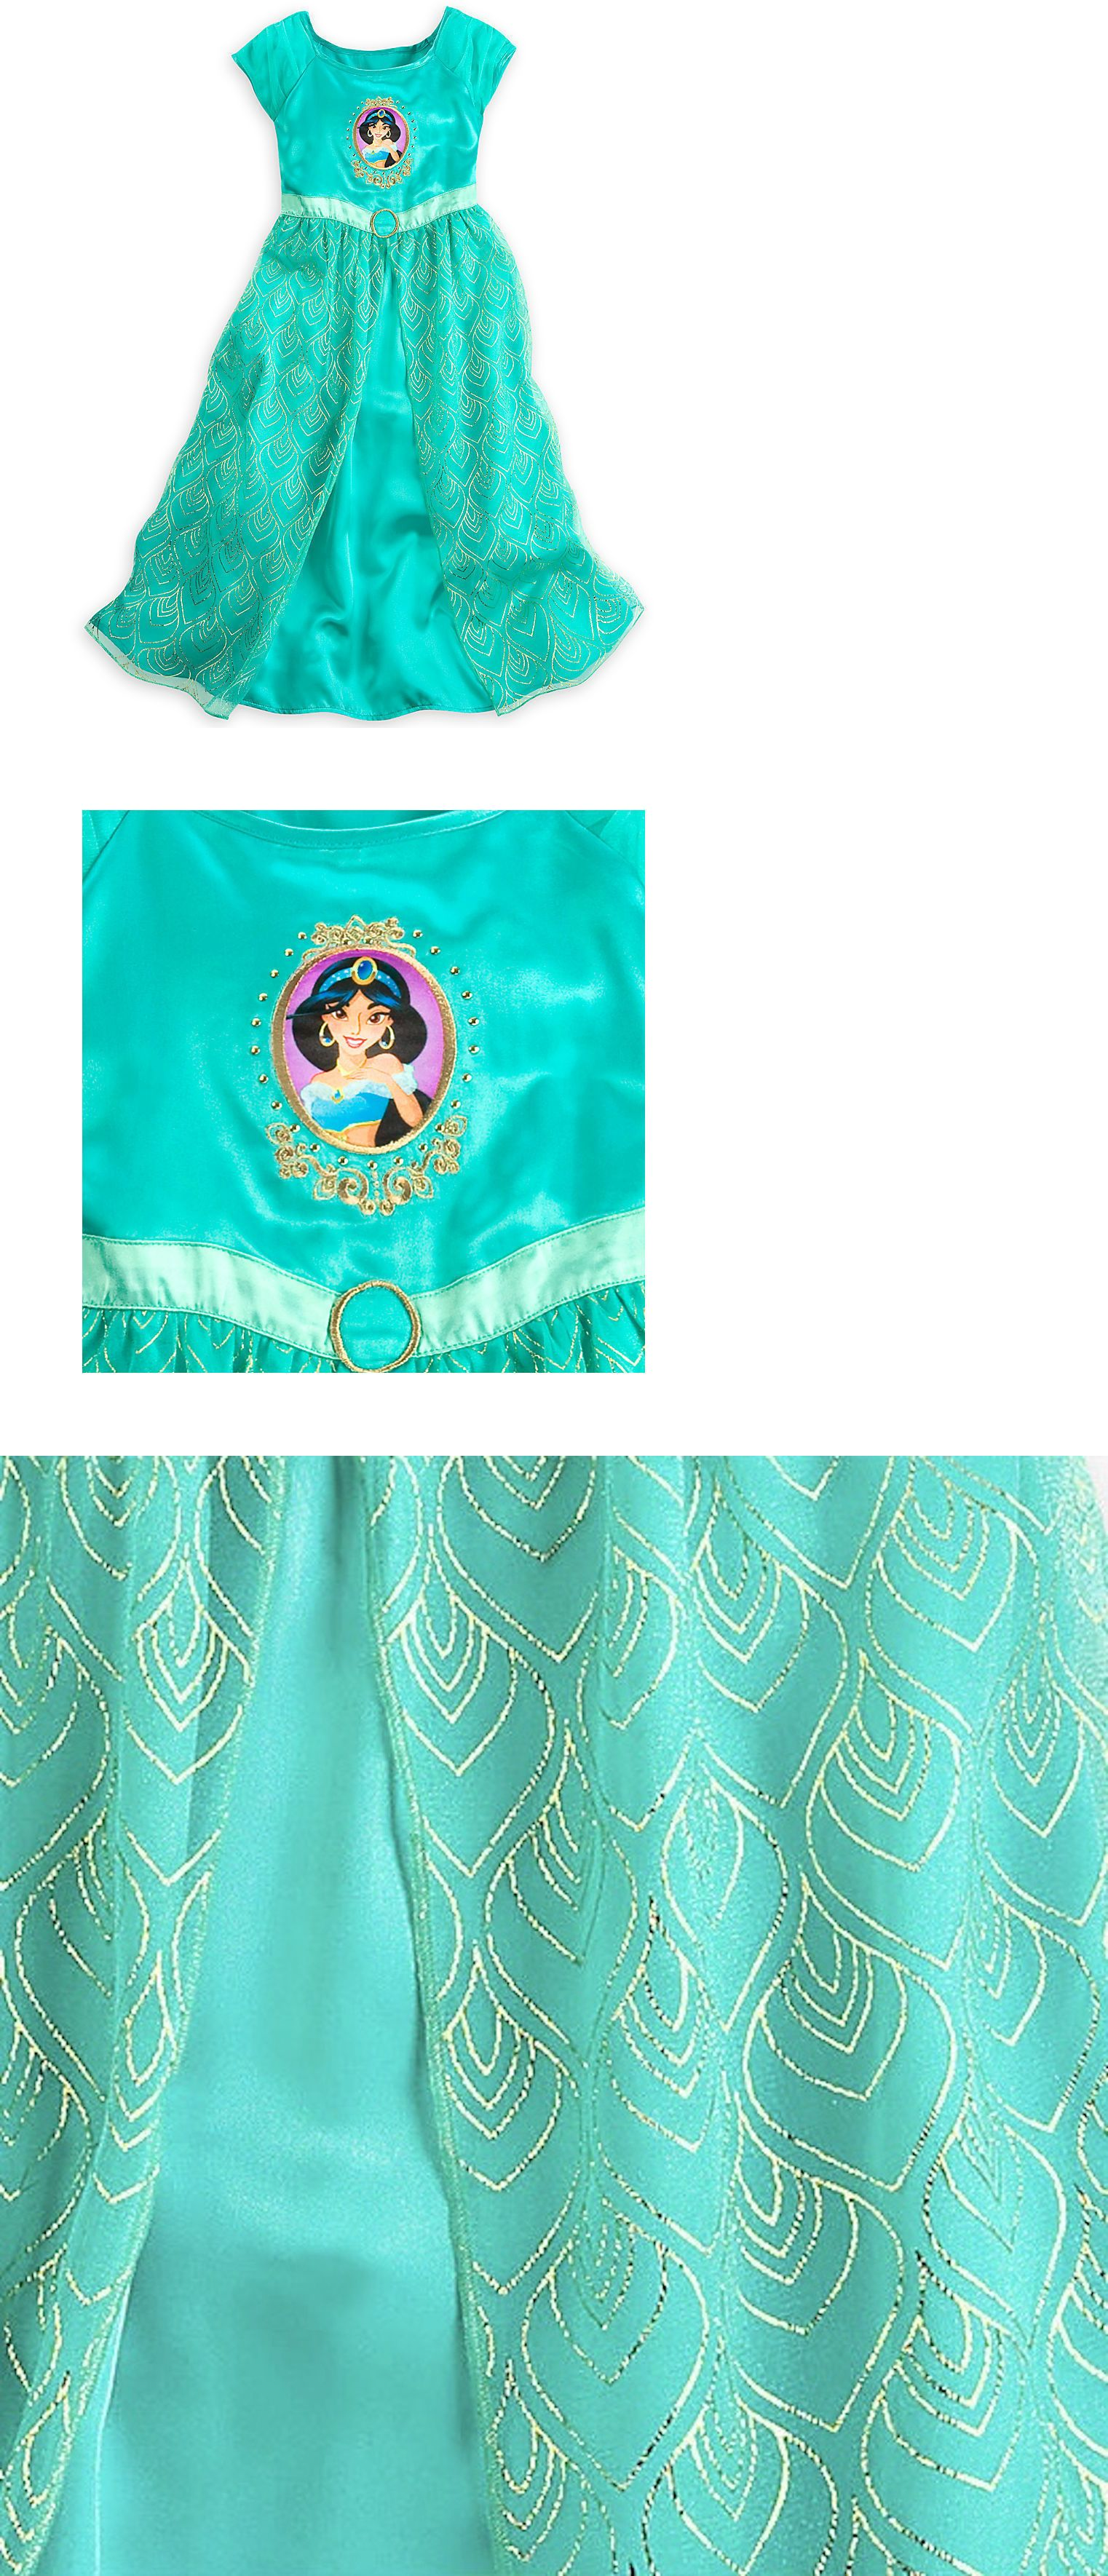 Disney Store Aladdin Princess Jasmine Short Sleeve Nightgown Pajama Girl NEW